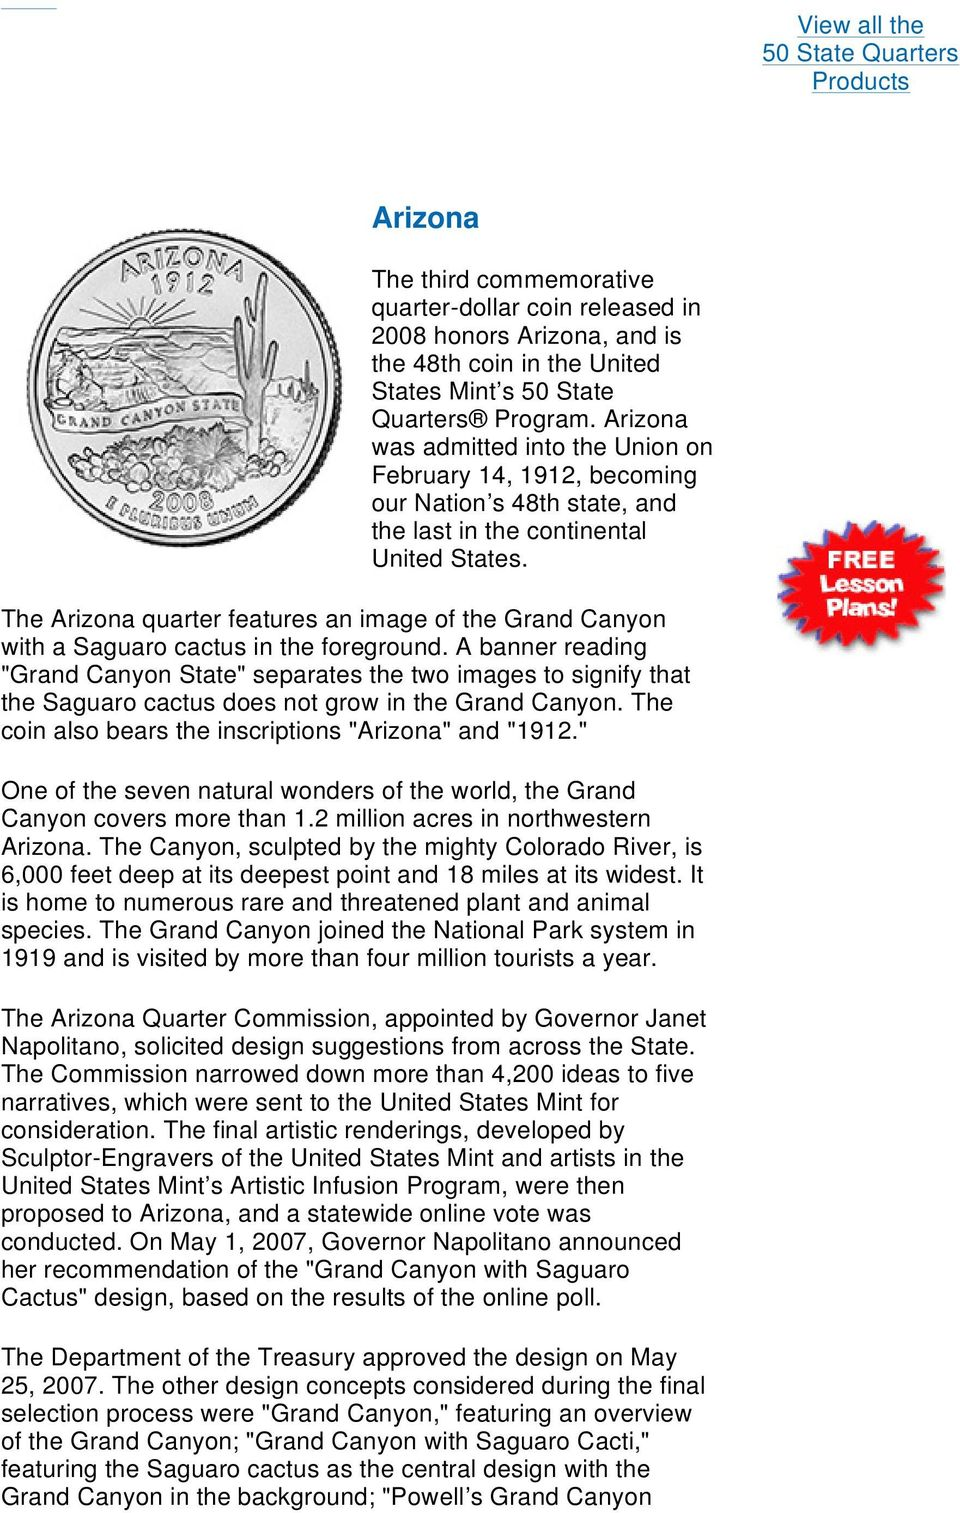 The Arizona quarter features an image of the Grand Canyon with a Saguaro cactus in the foreground.